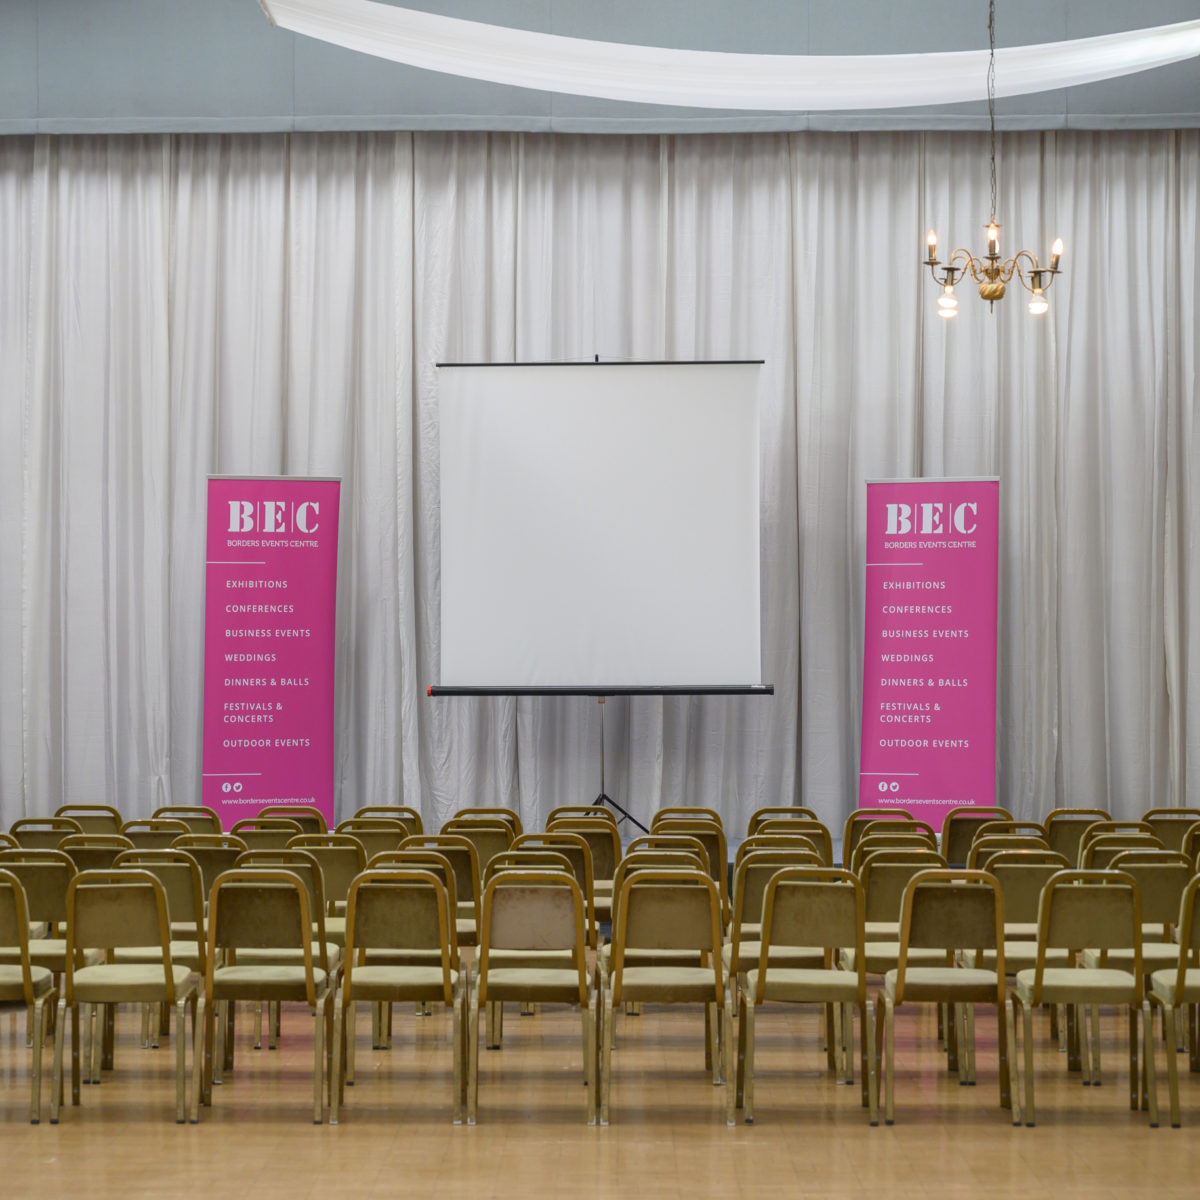 Conference facilities in the Scottish Borders